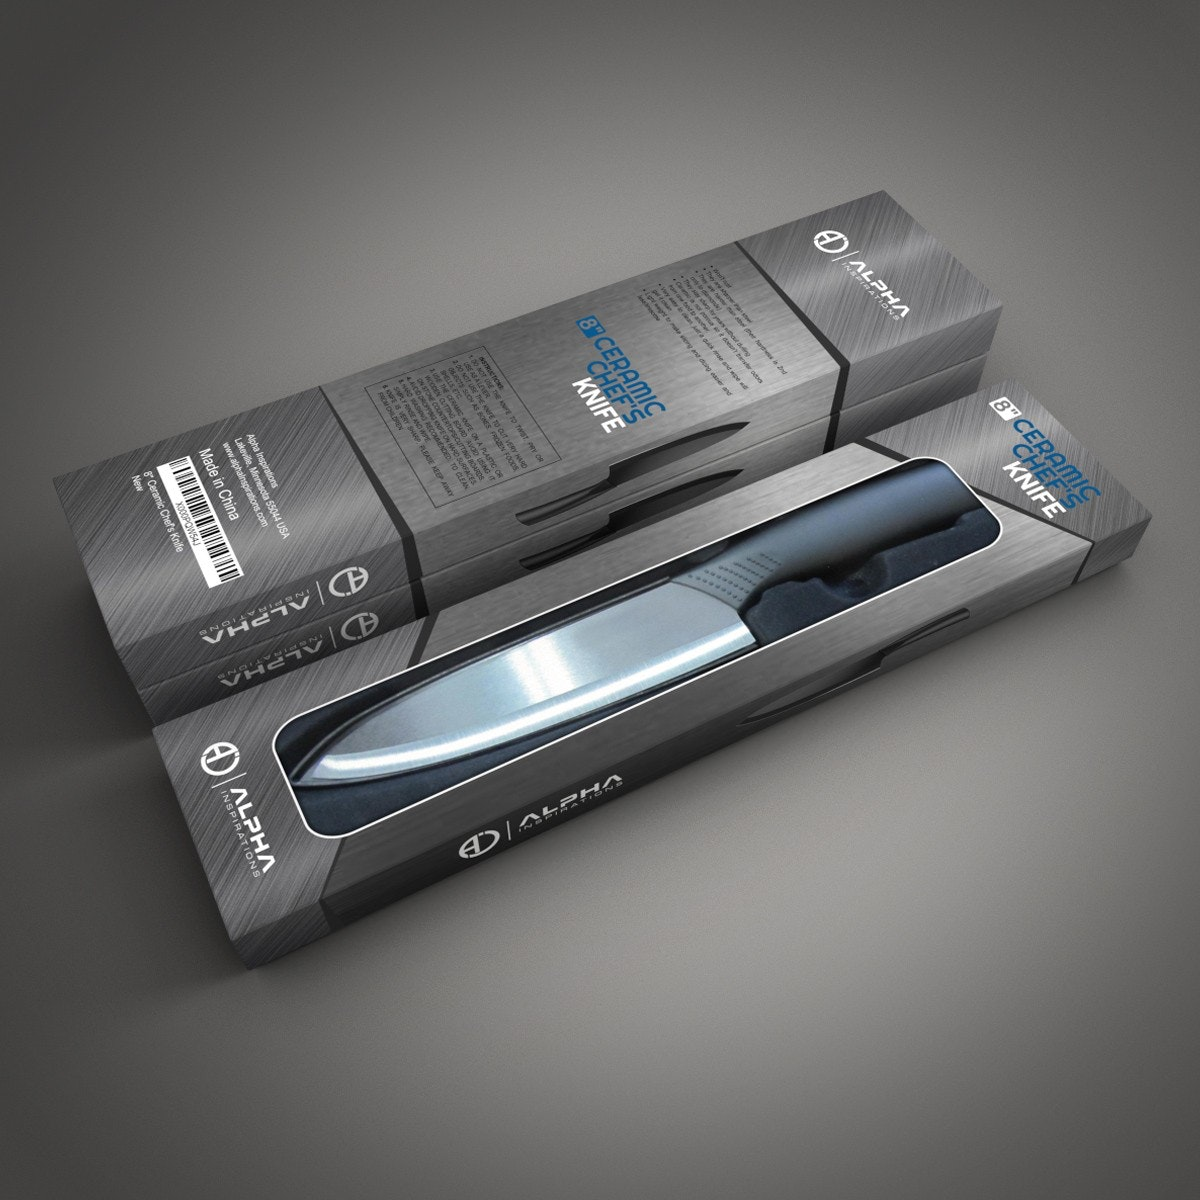 Alpha ceramic knife packaging